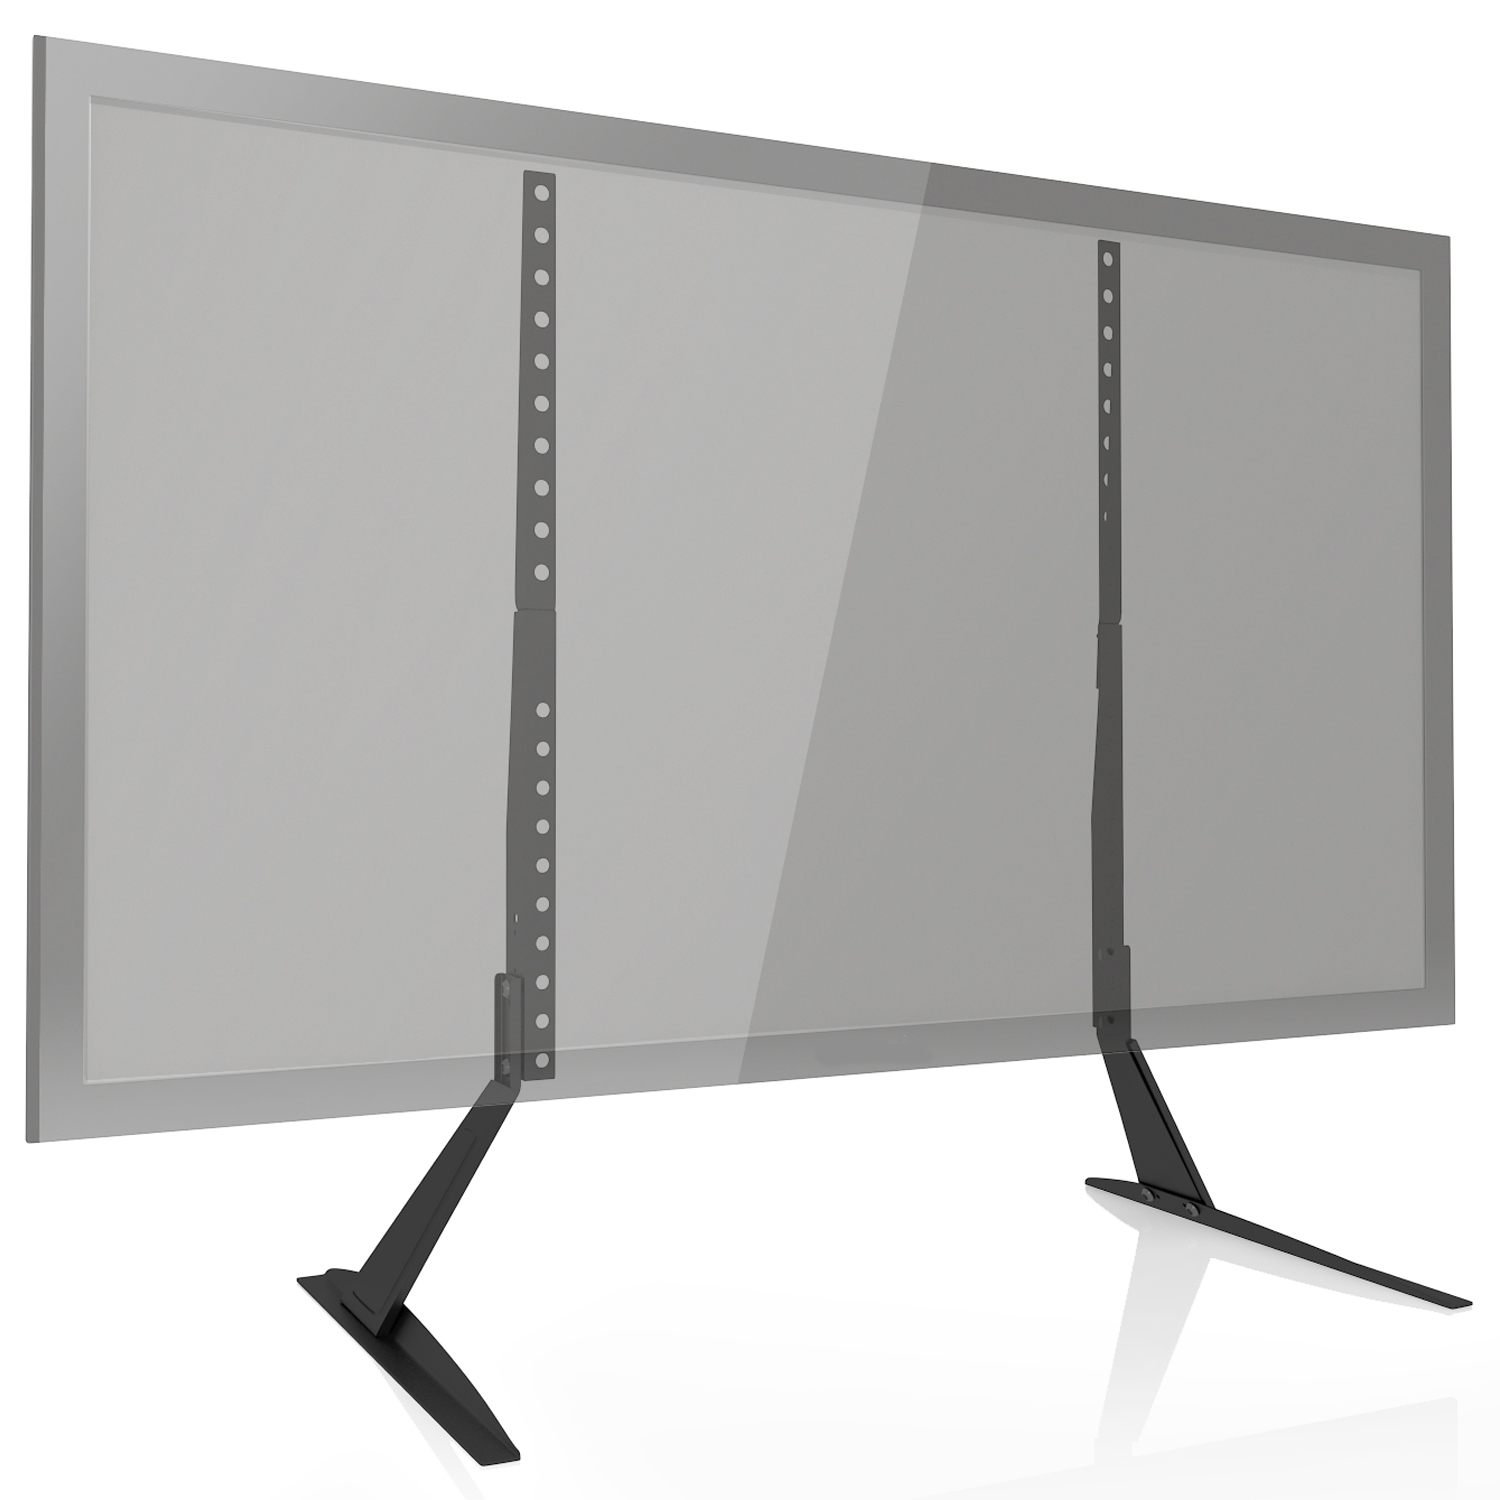 wali universal lcd flat screen tv table top stand base. Black Bedroom Furniture Sets. Home Design Ideas